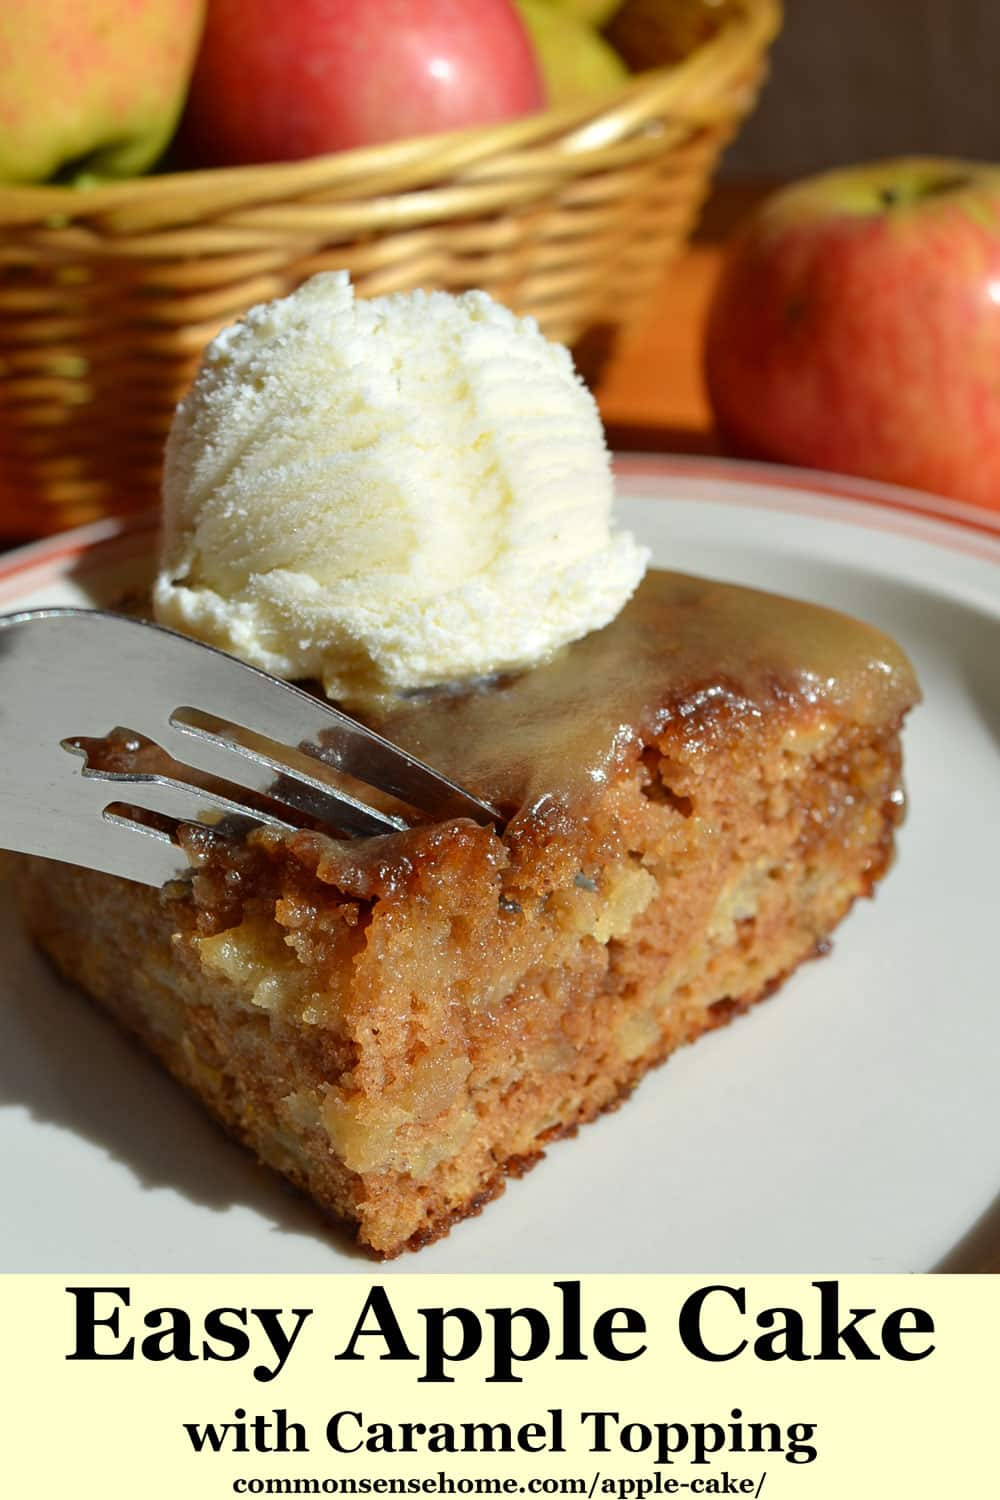 Easy Apple Cake with Caramel Topping